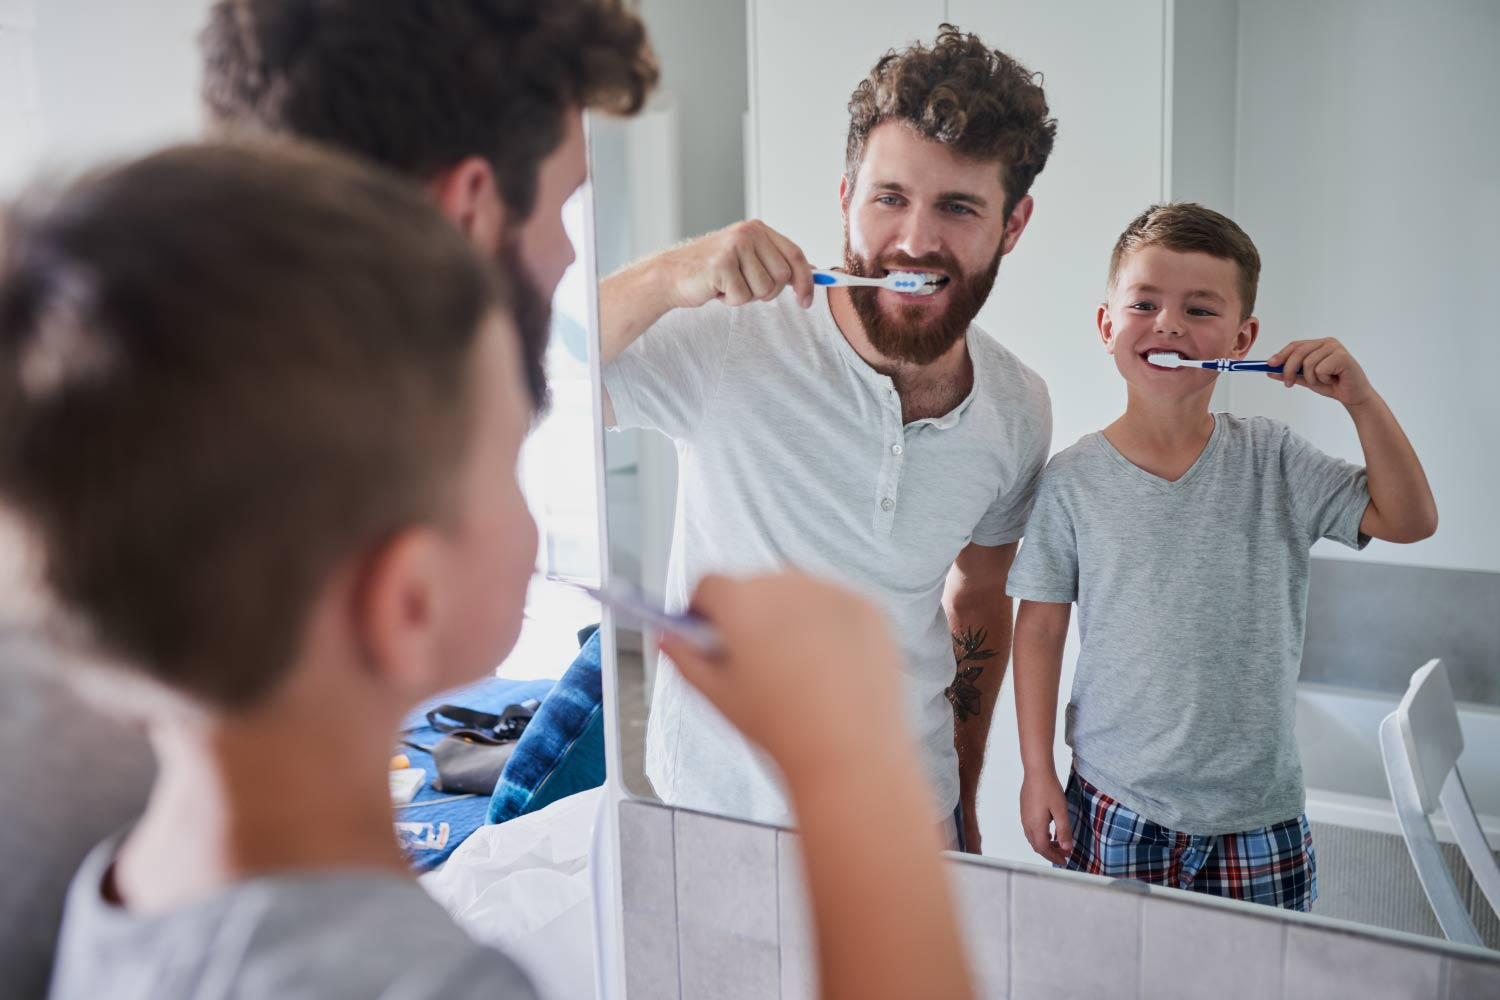 Dad brushes his teeth with his son, making oral hygiene fun for kids